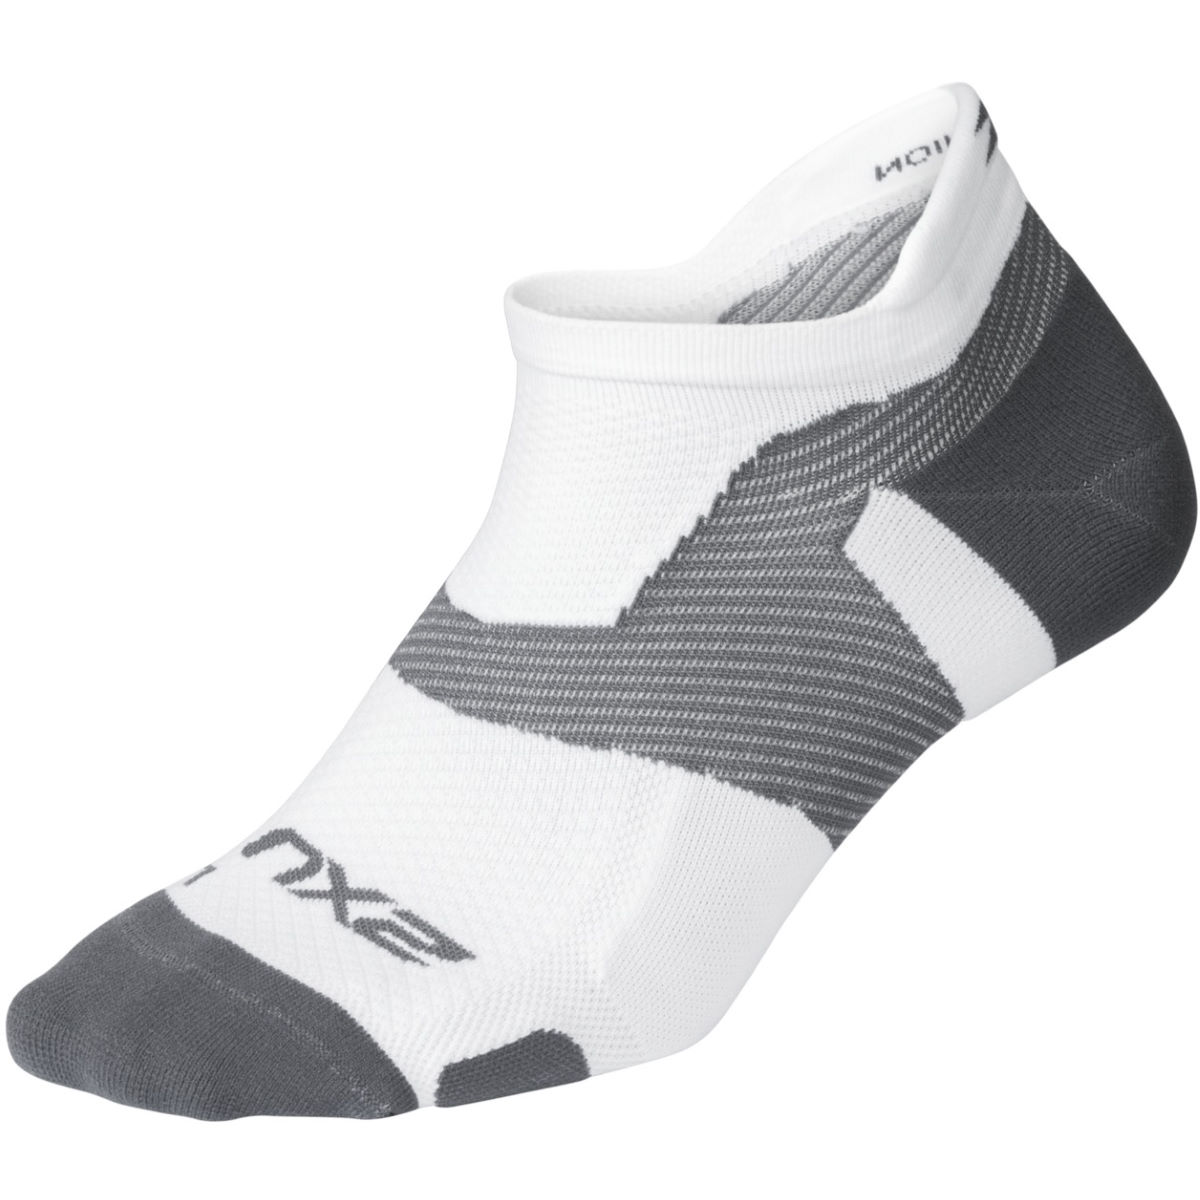 Chaussettes 2XU Vectr Light Cushion No Show (blanches) - S